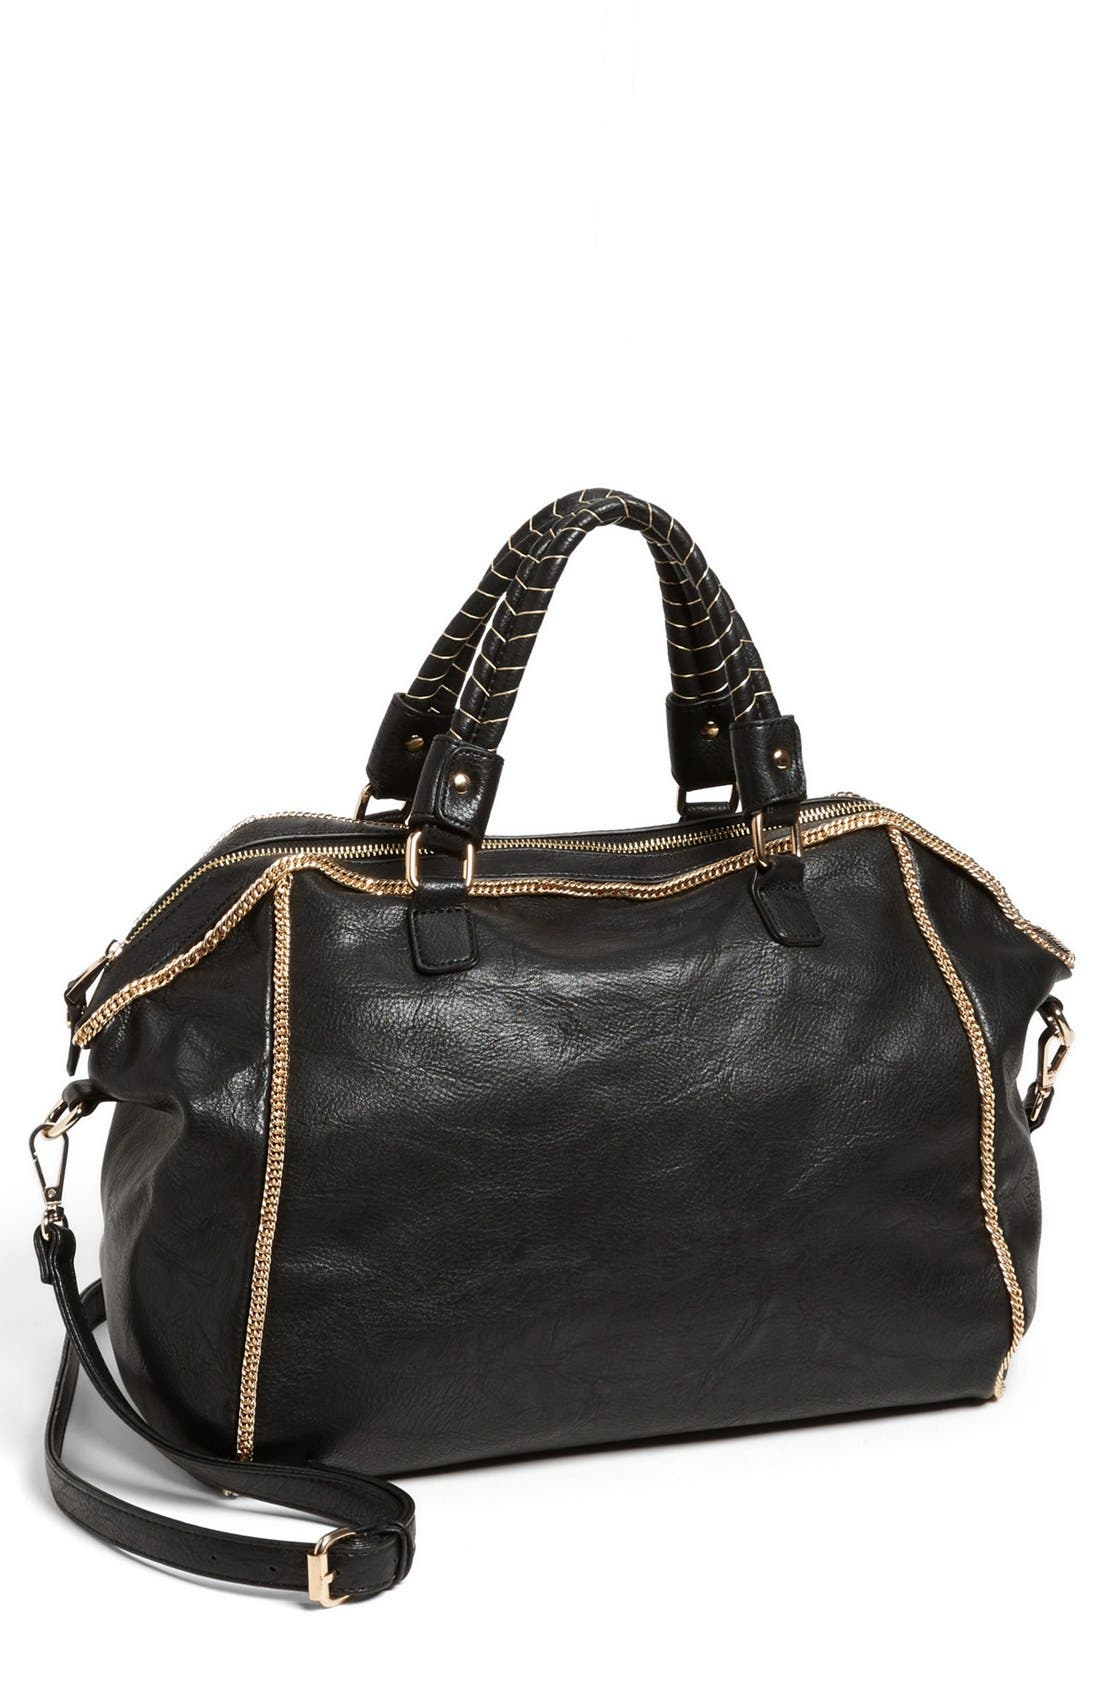 Alternate Image 1 Selected - Urban Expressions Handbags 'Janae' Faux Leather Satchel